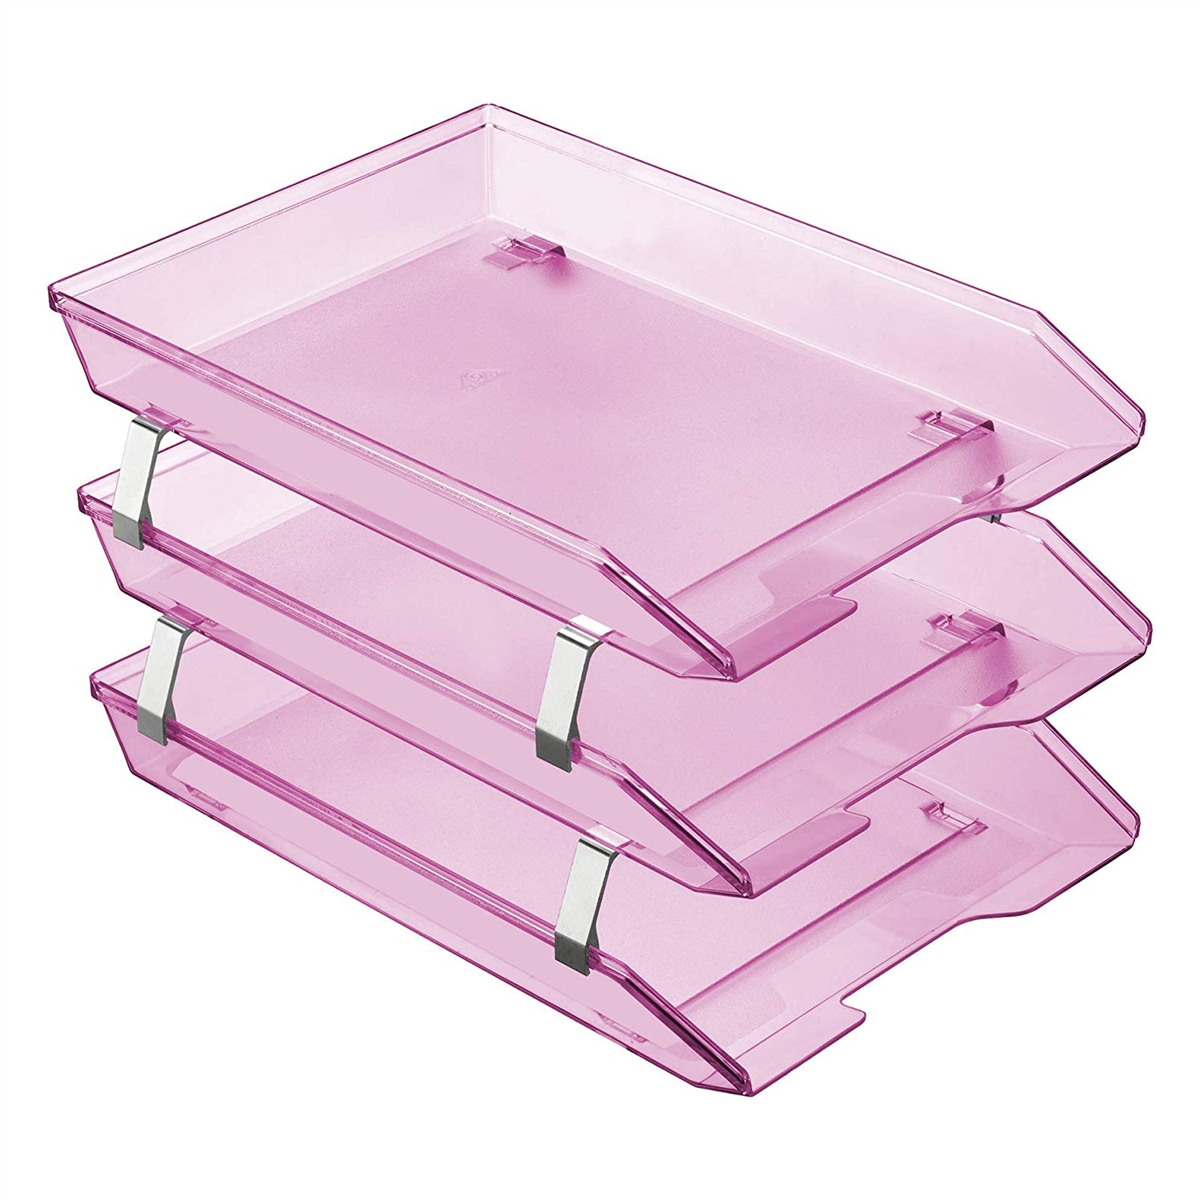 Acrimet Facility 3 Tiers Triple Letter Tray Frontal (Clear Pink ...